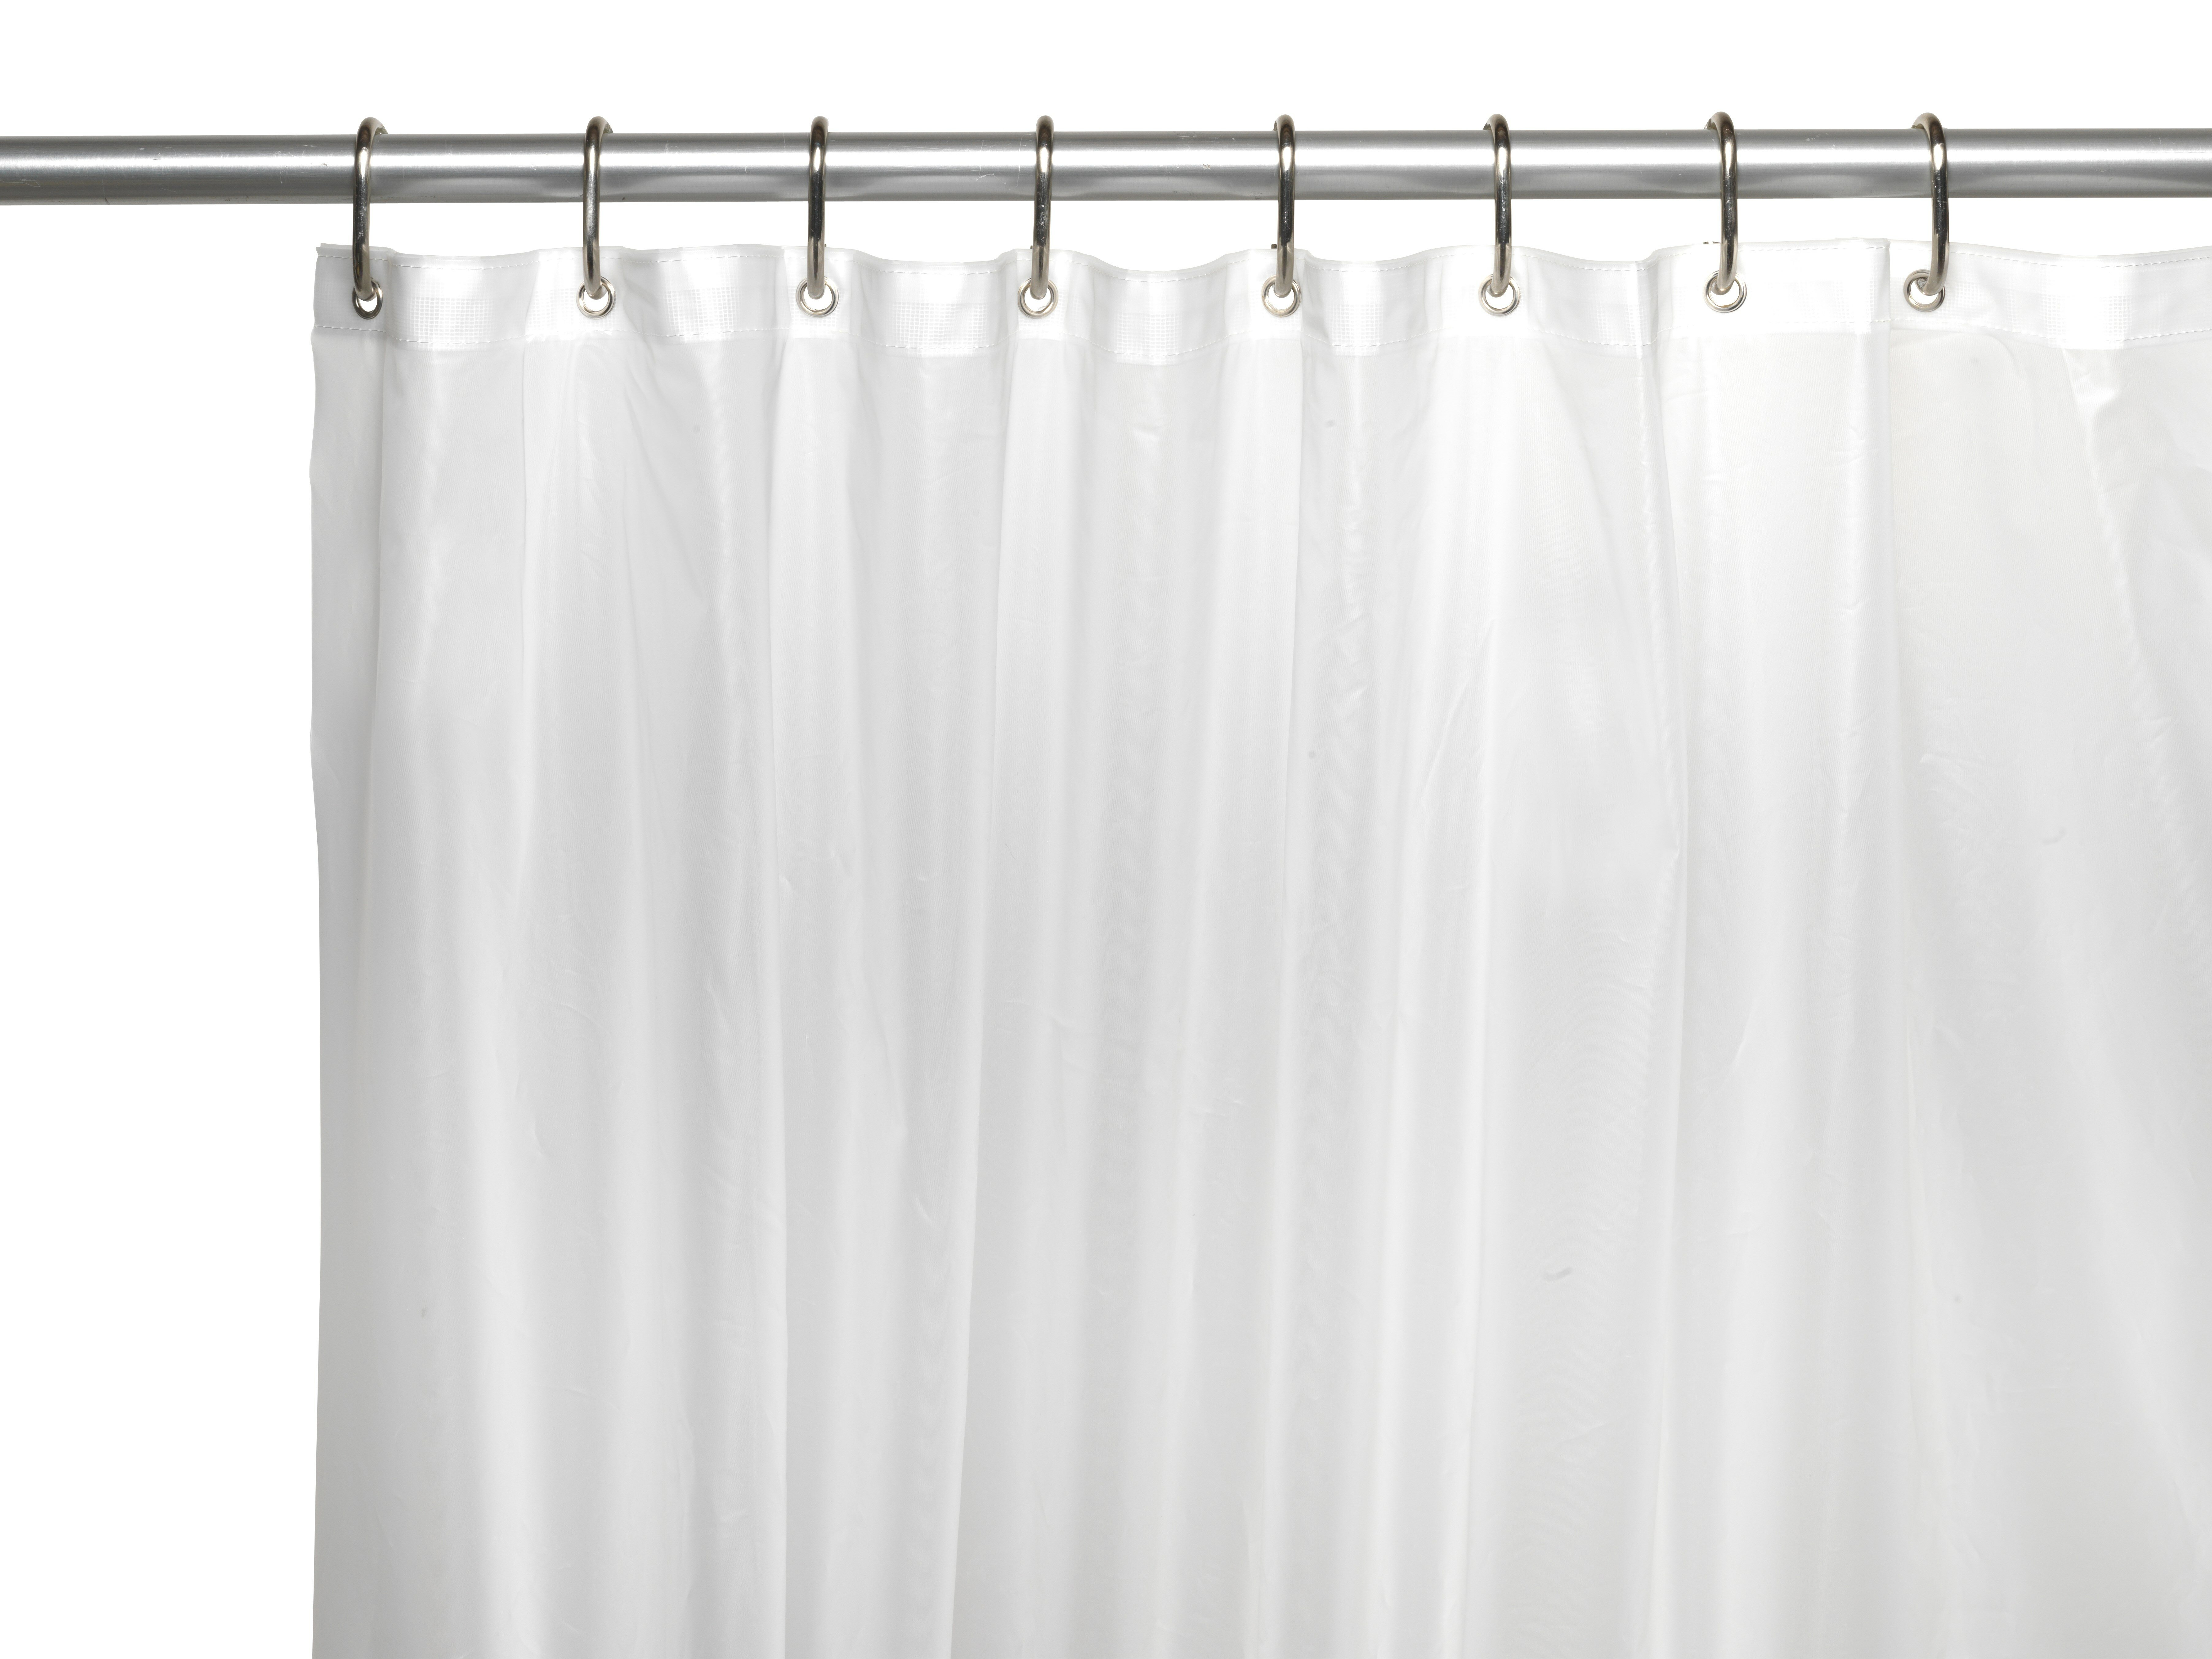 Dareios Peva Single Shower Curtain Liner Reviews Joss Main